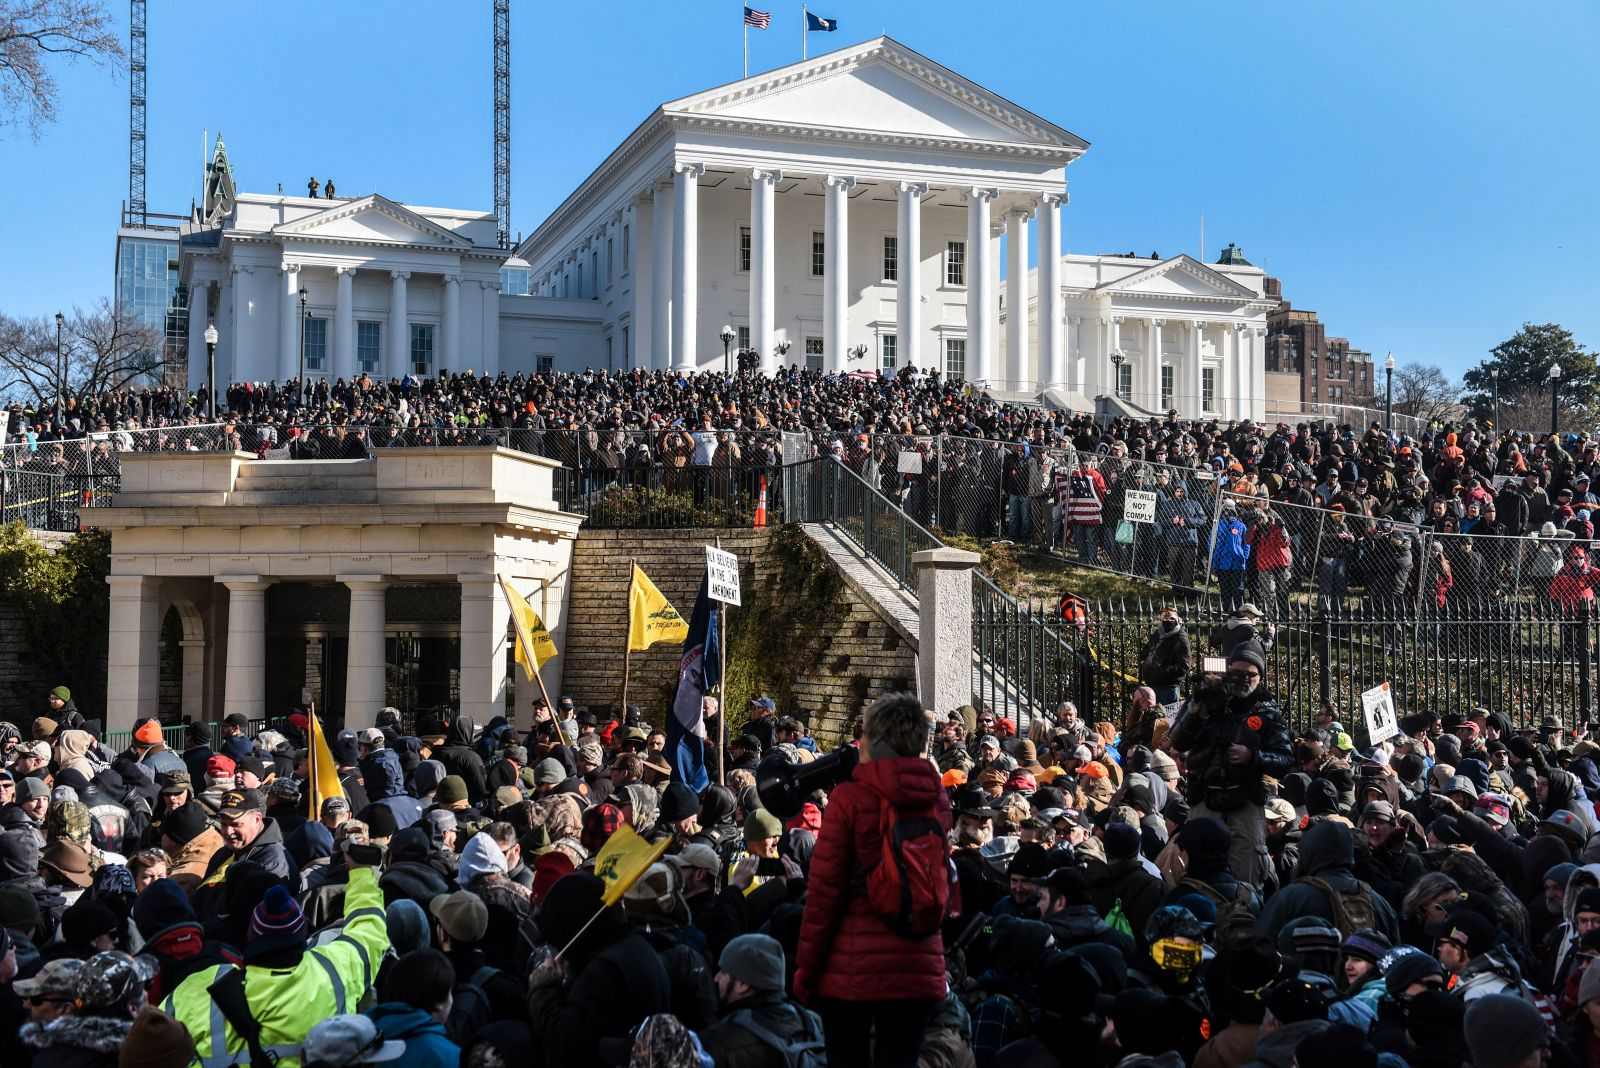 A large crowd gathers on a Gun Lobby Day in front of the Virginia State Capitol building in Richmond